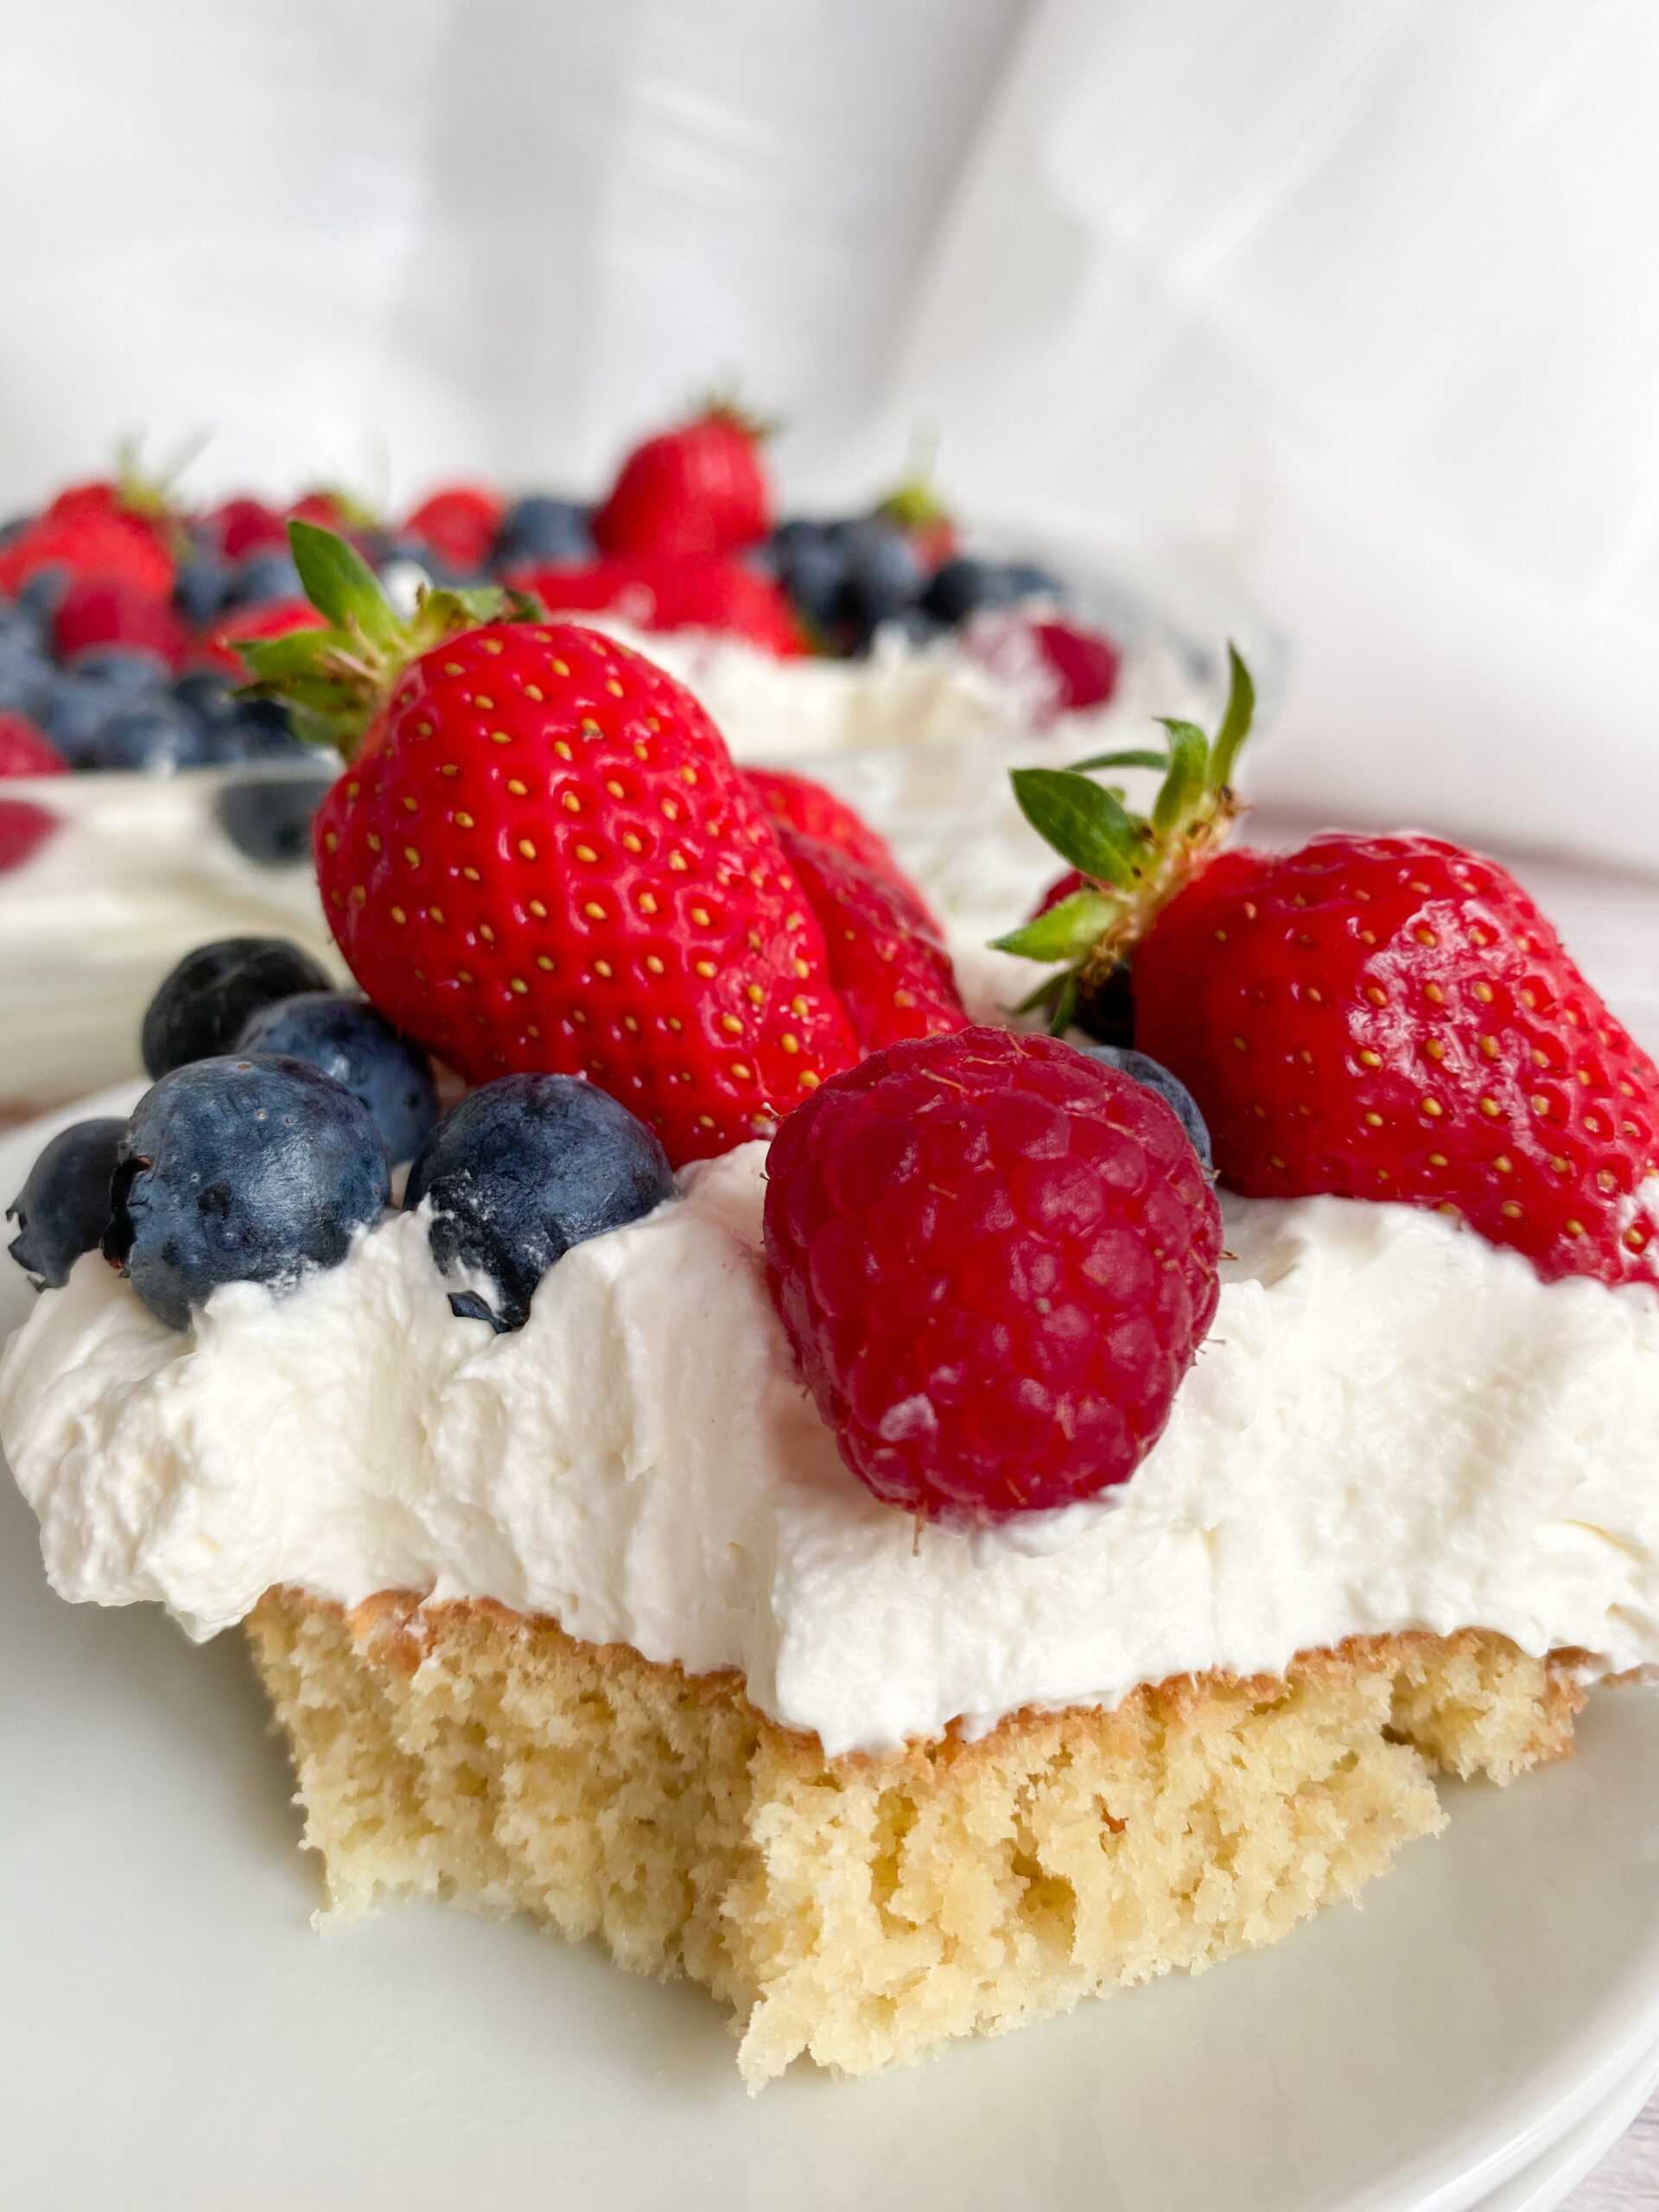 Photo of keto cake with berries and whipped cream